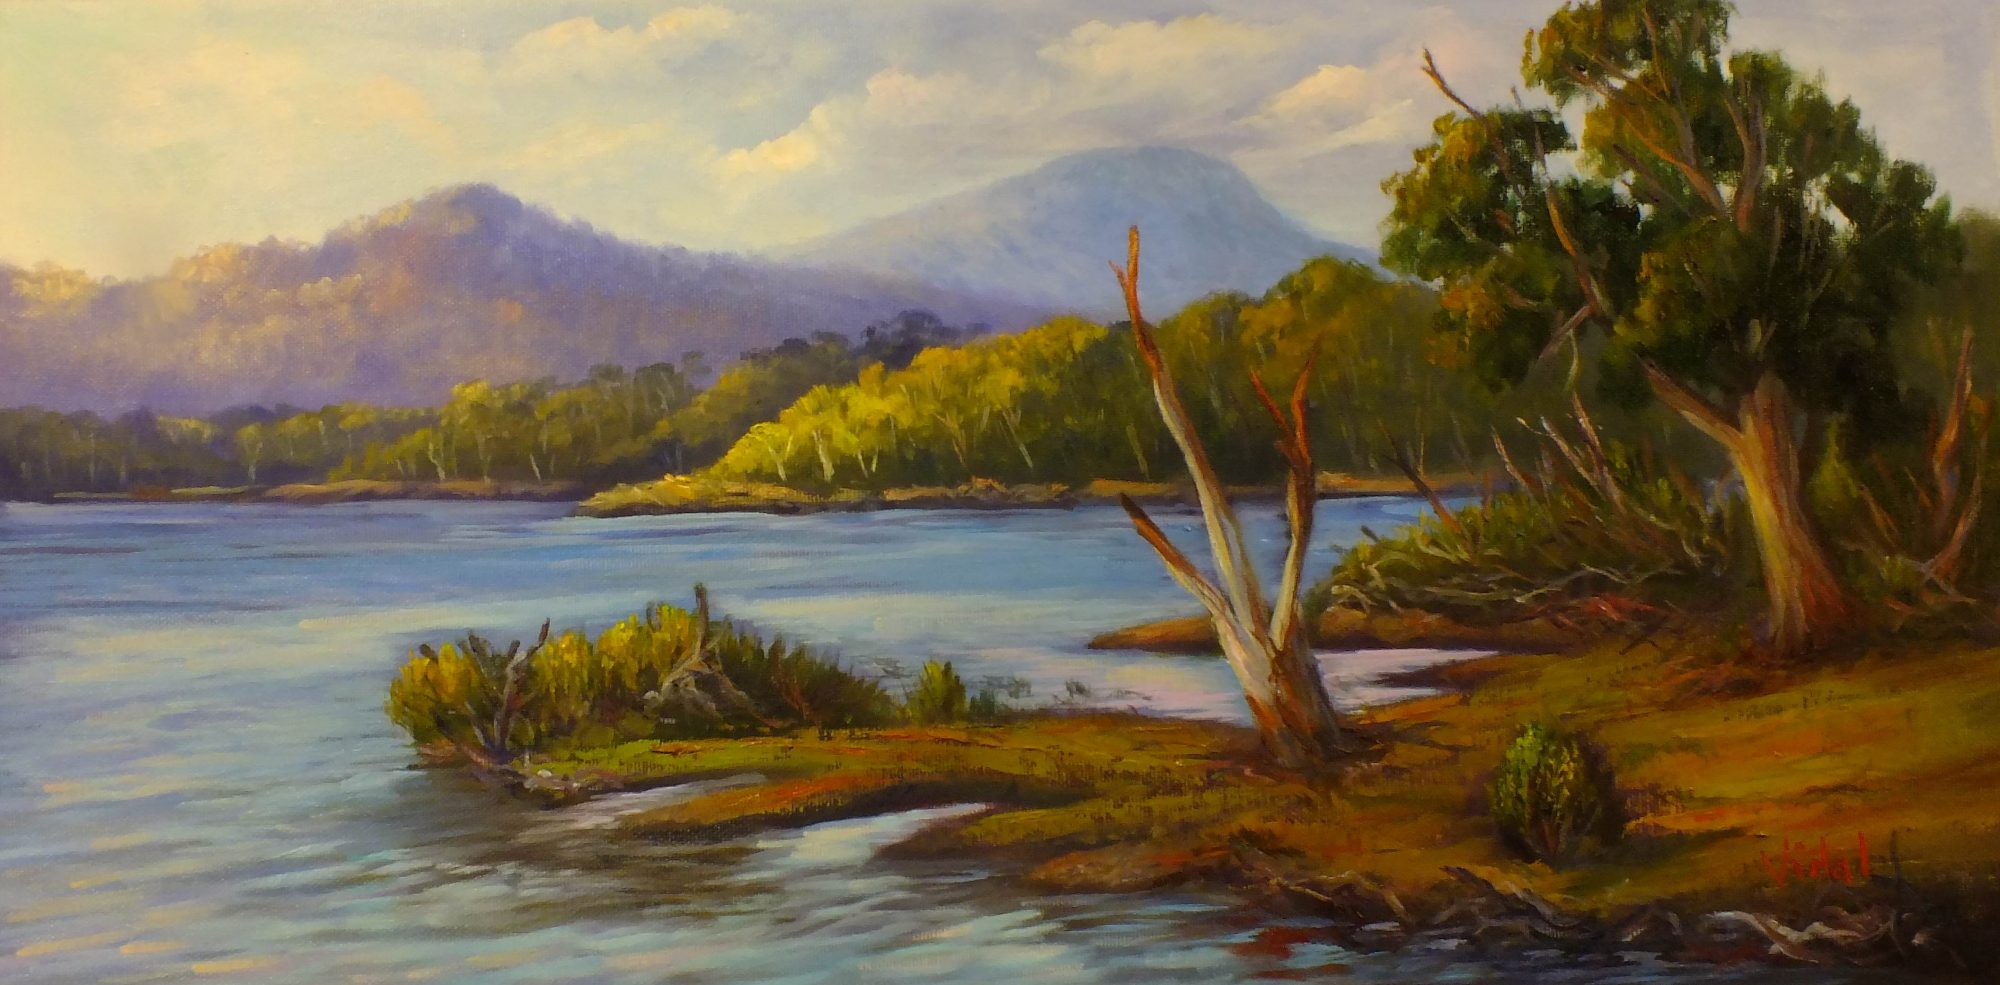 Lake St Clair Tasmania Oil On Canvas Landscape Painting By C Vidal